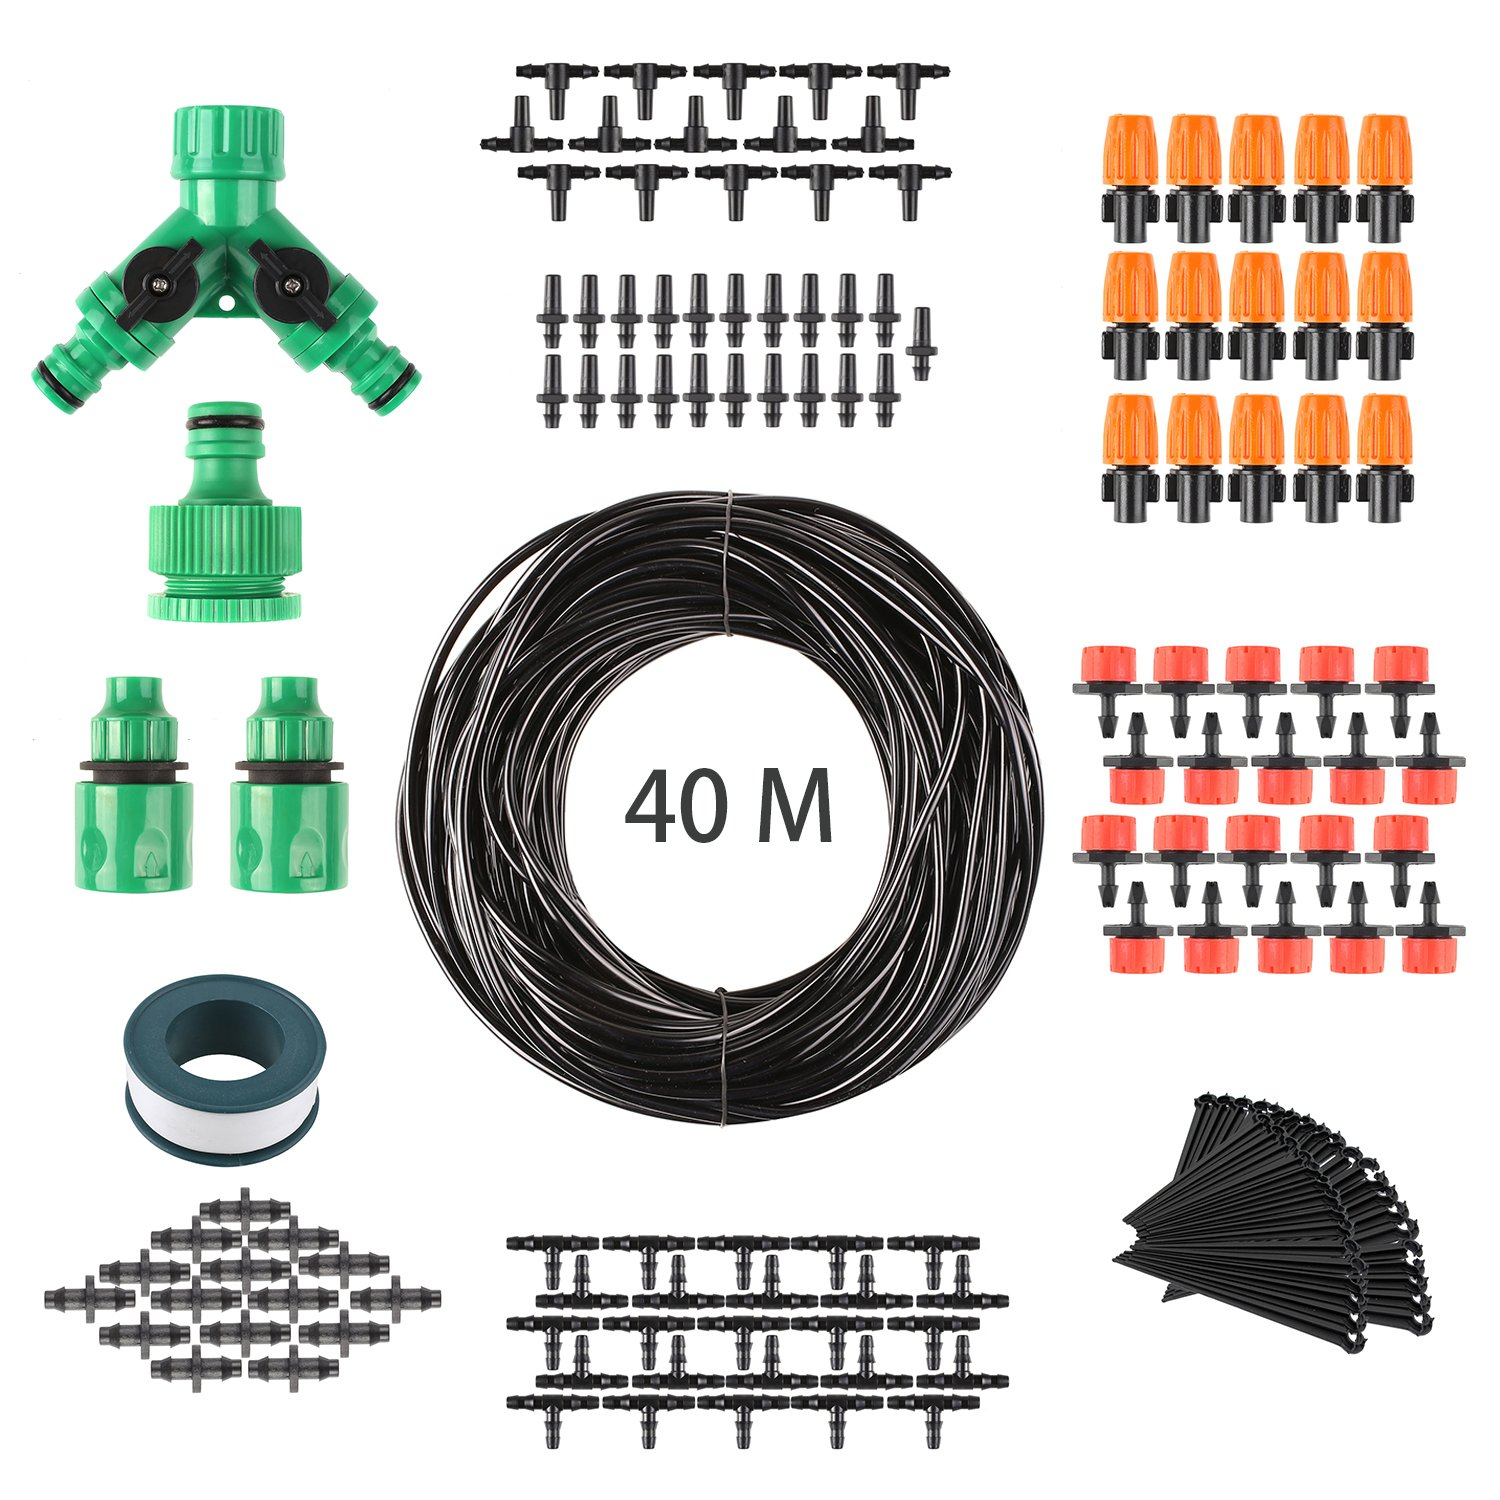 FIXKIT 40M Automatic Micro Drip Irrigation Kit, Irrigation System, Suitable for Garden Irrigation and DIY, with Automatic Sprinkler